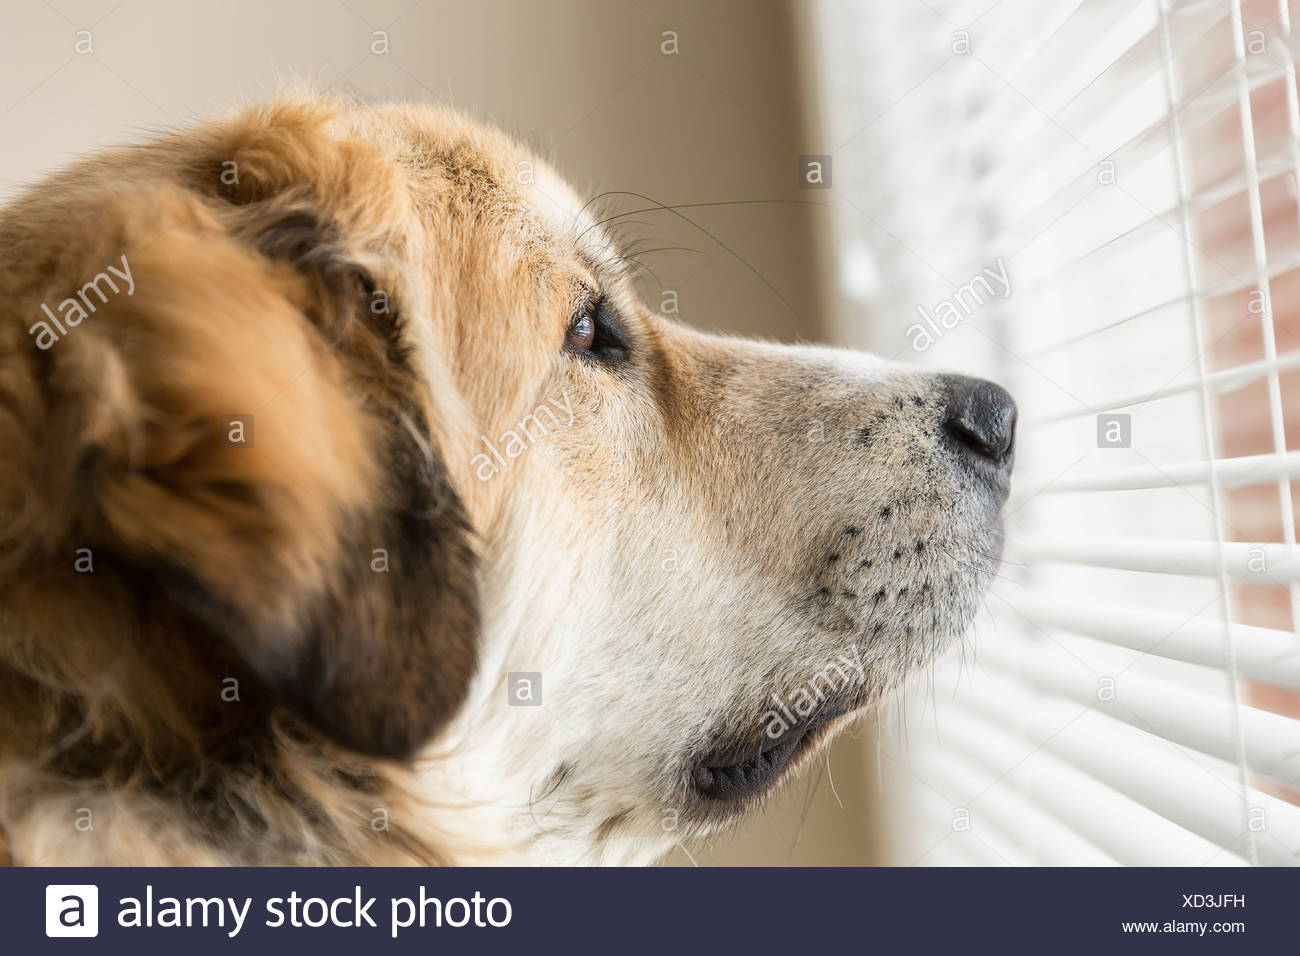 Dog Covering Face Stock Photos Amp Dog Covering Face Stock